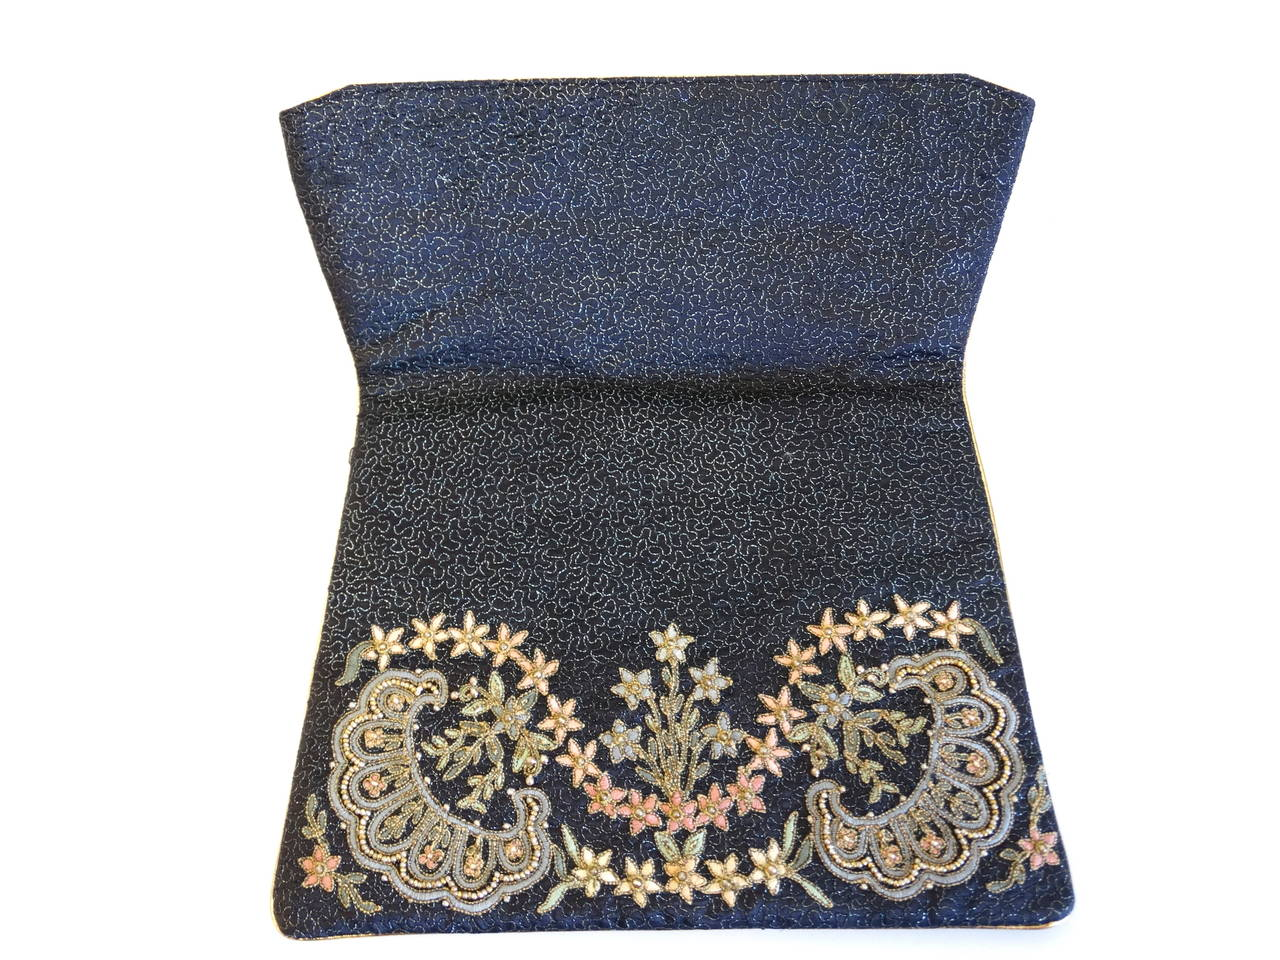 1950s Marheta Embroidered Fold Over Hand Clutch 3